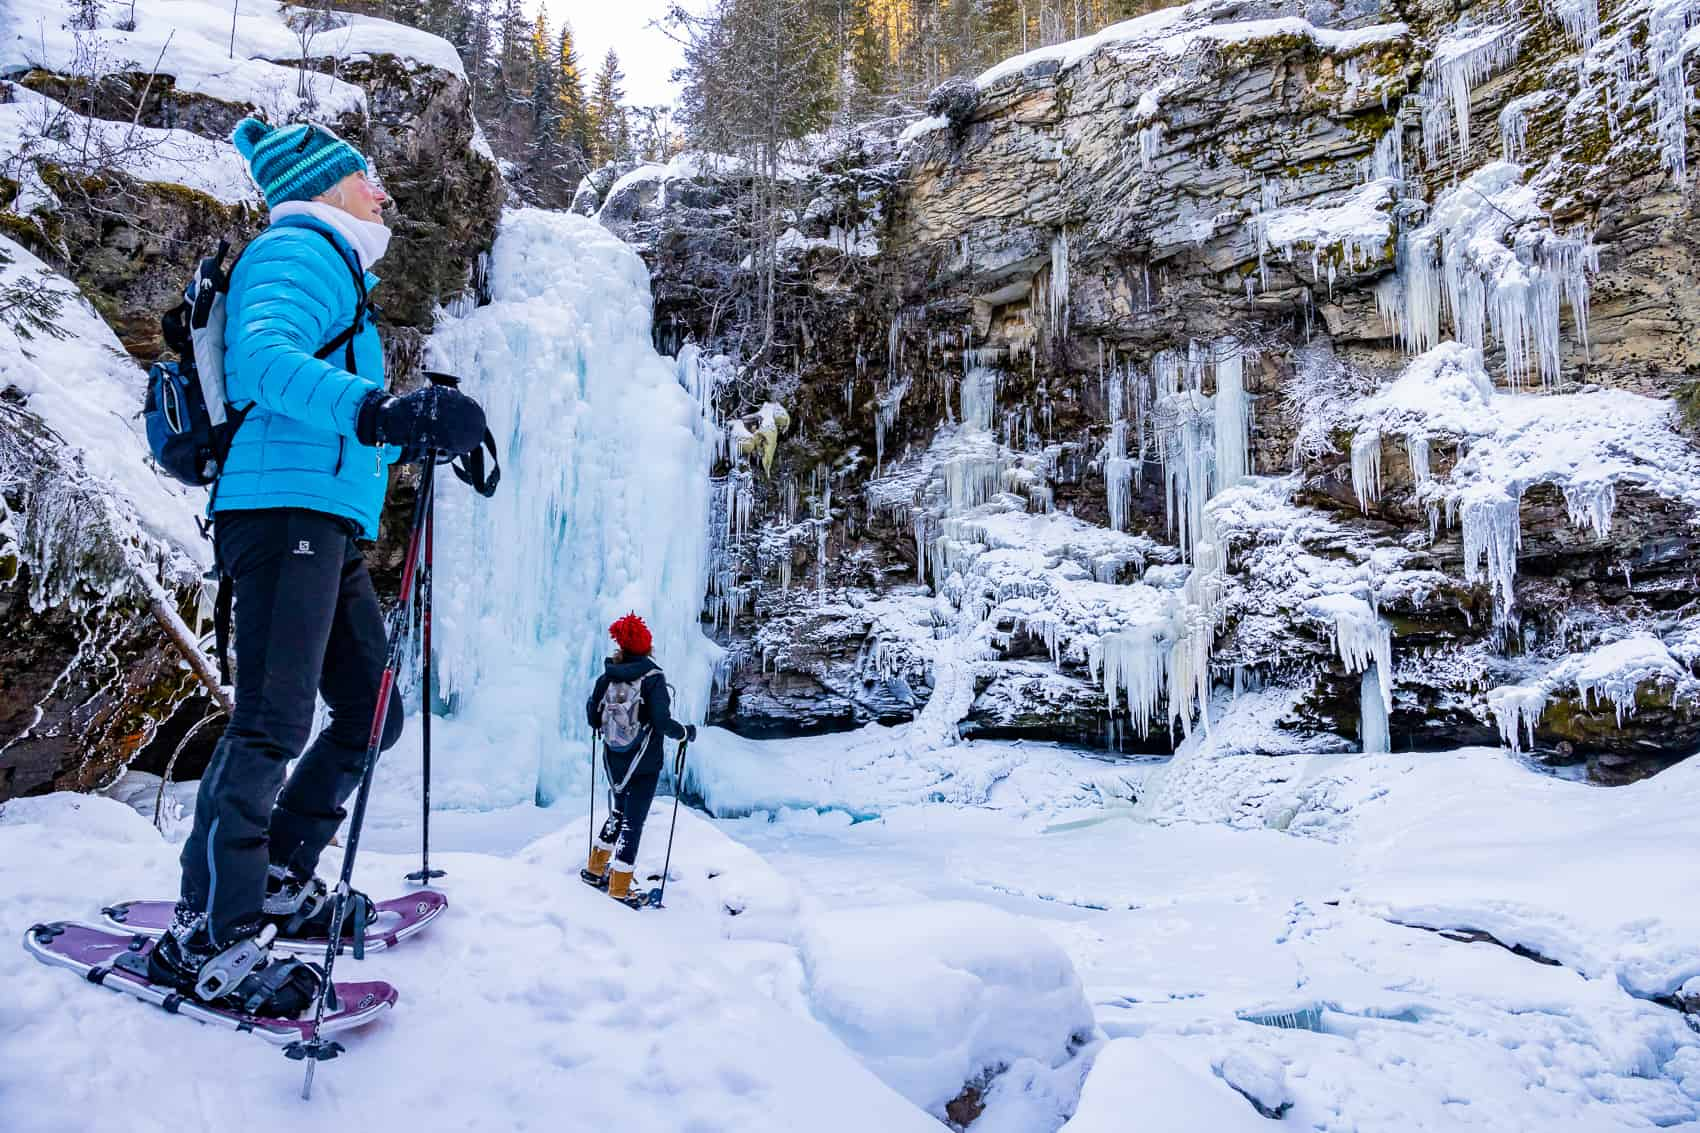 Snowshoeing near frozen waterfall Revelstoke